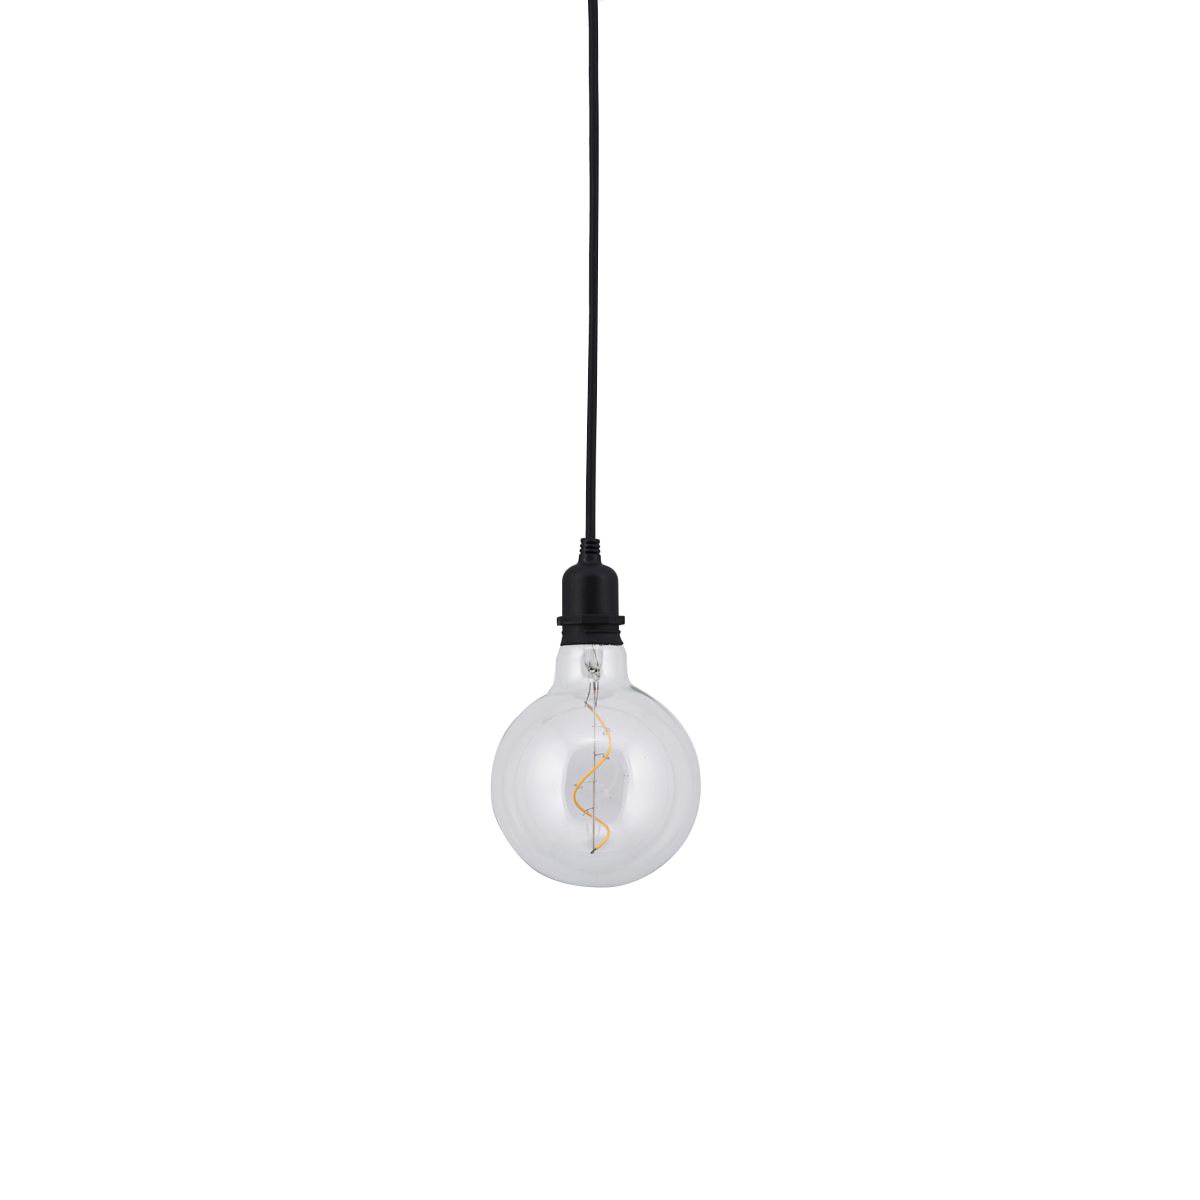 House Doctor - Coso Ceiling Lamp - Lamp (209420100)